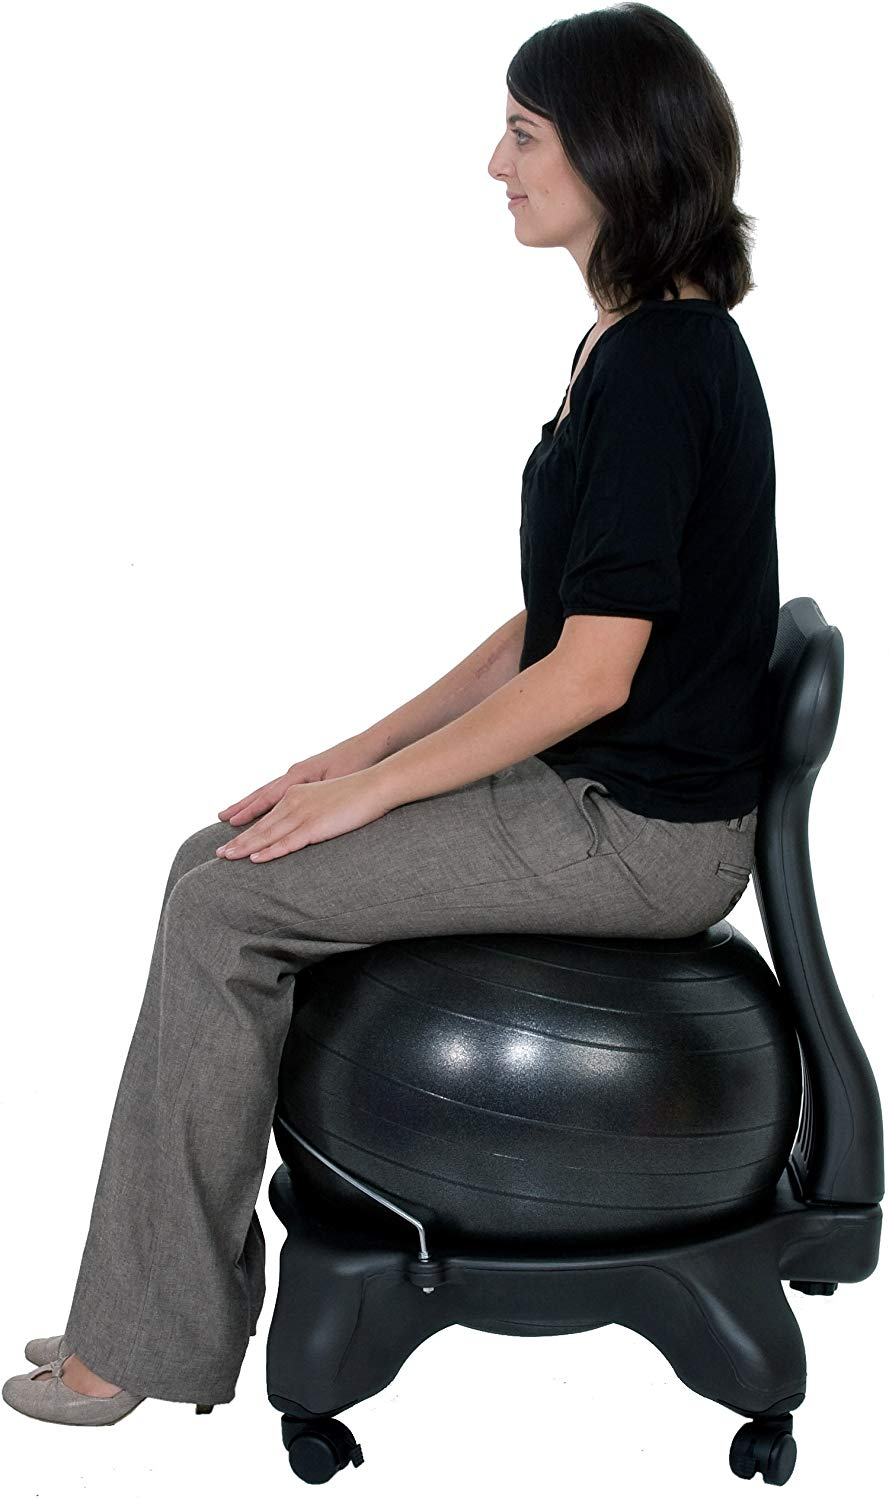 Balance Exercise Ball Chair by Isokinetics Inc.